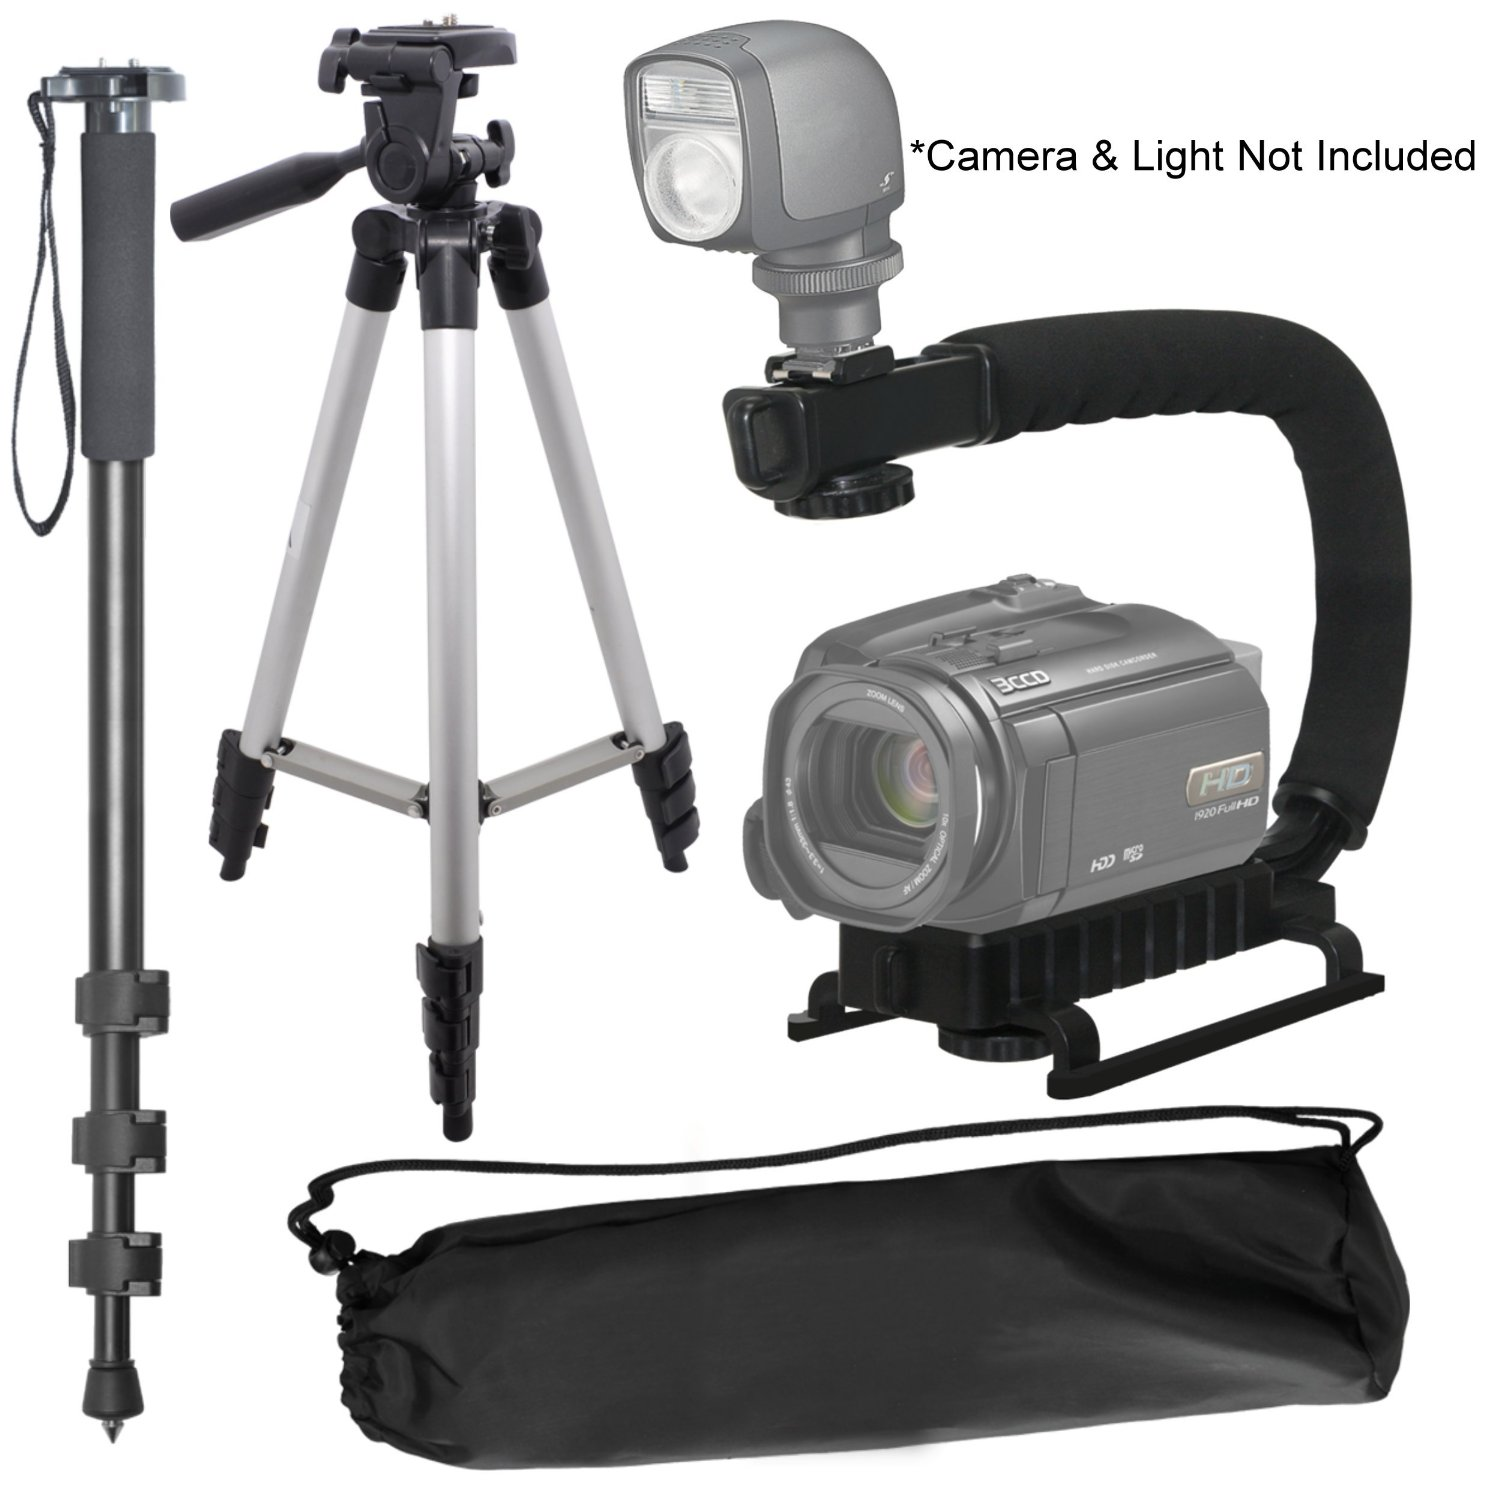 Compatible with Kodak Easy Share MAX SLR Camera DURAGADGET Professional Tough Versatile Sturdy Tripod with 3D Ball Head